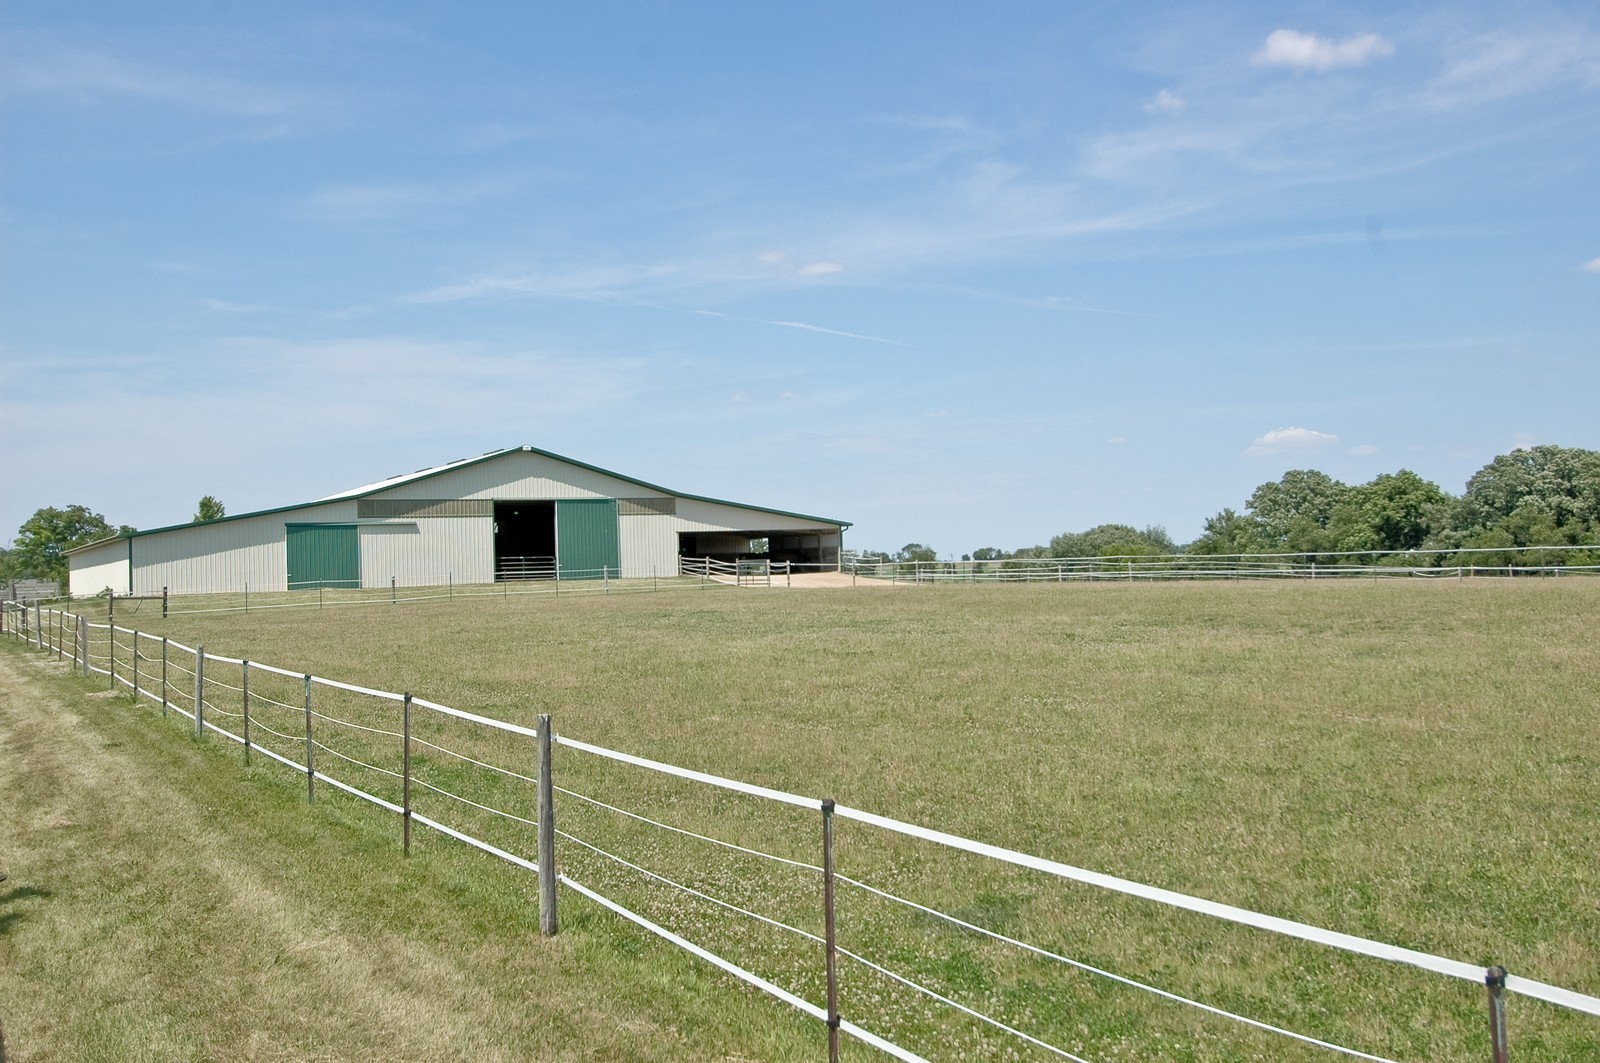 Real Estate Photography - 11785 Coon Trail, Harvard, IL, 60033 - Location 1